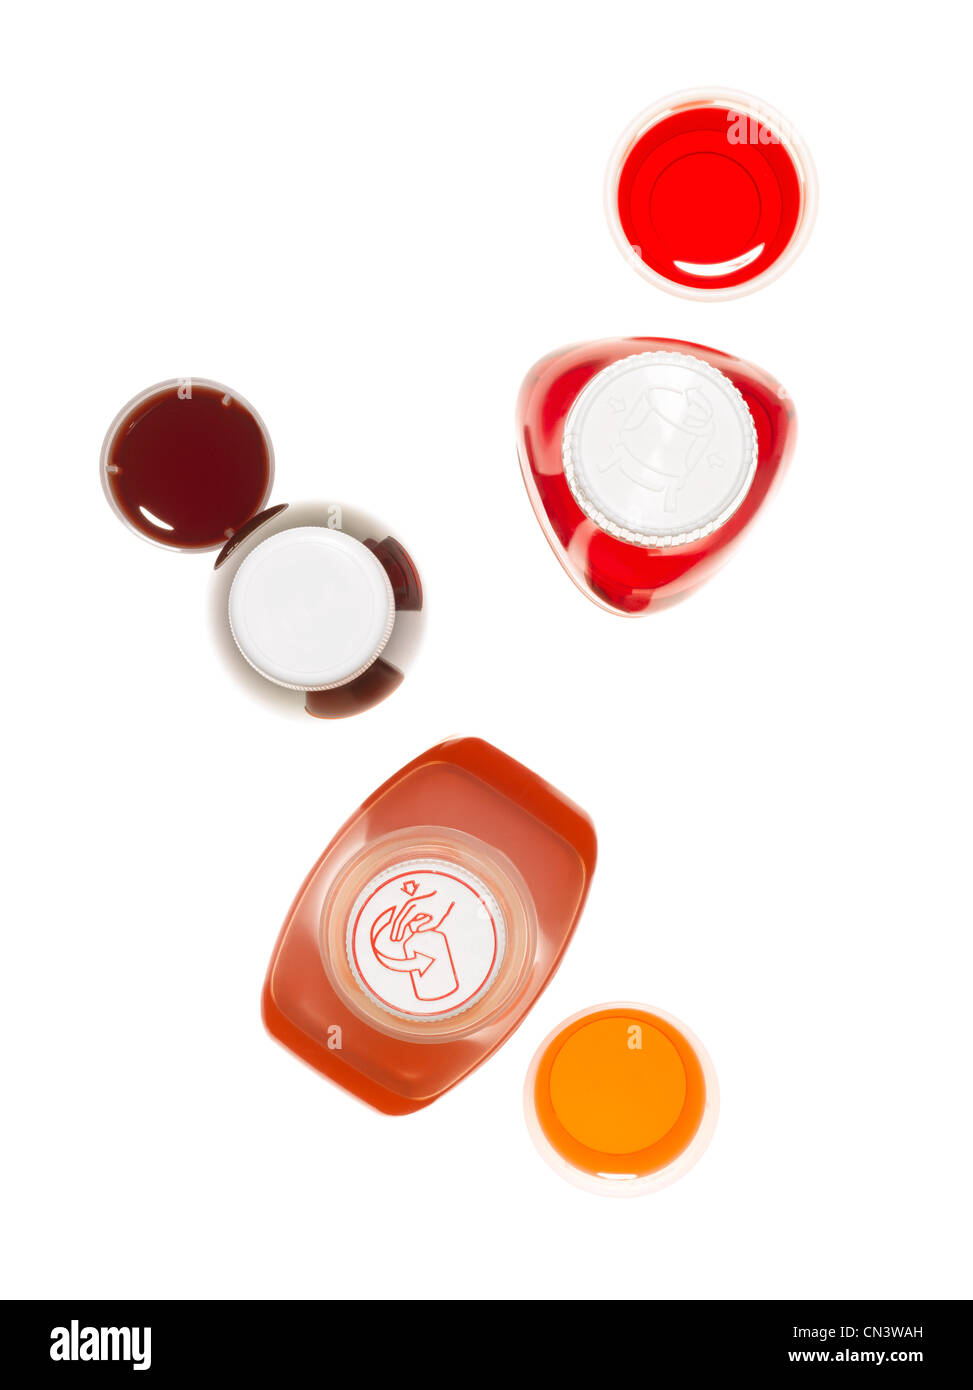 Overhead view of cough syrup bottles - Stock Image